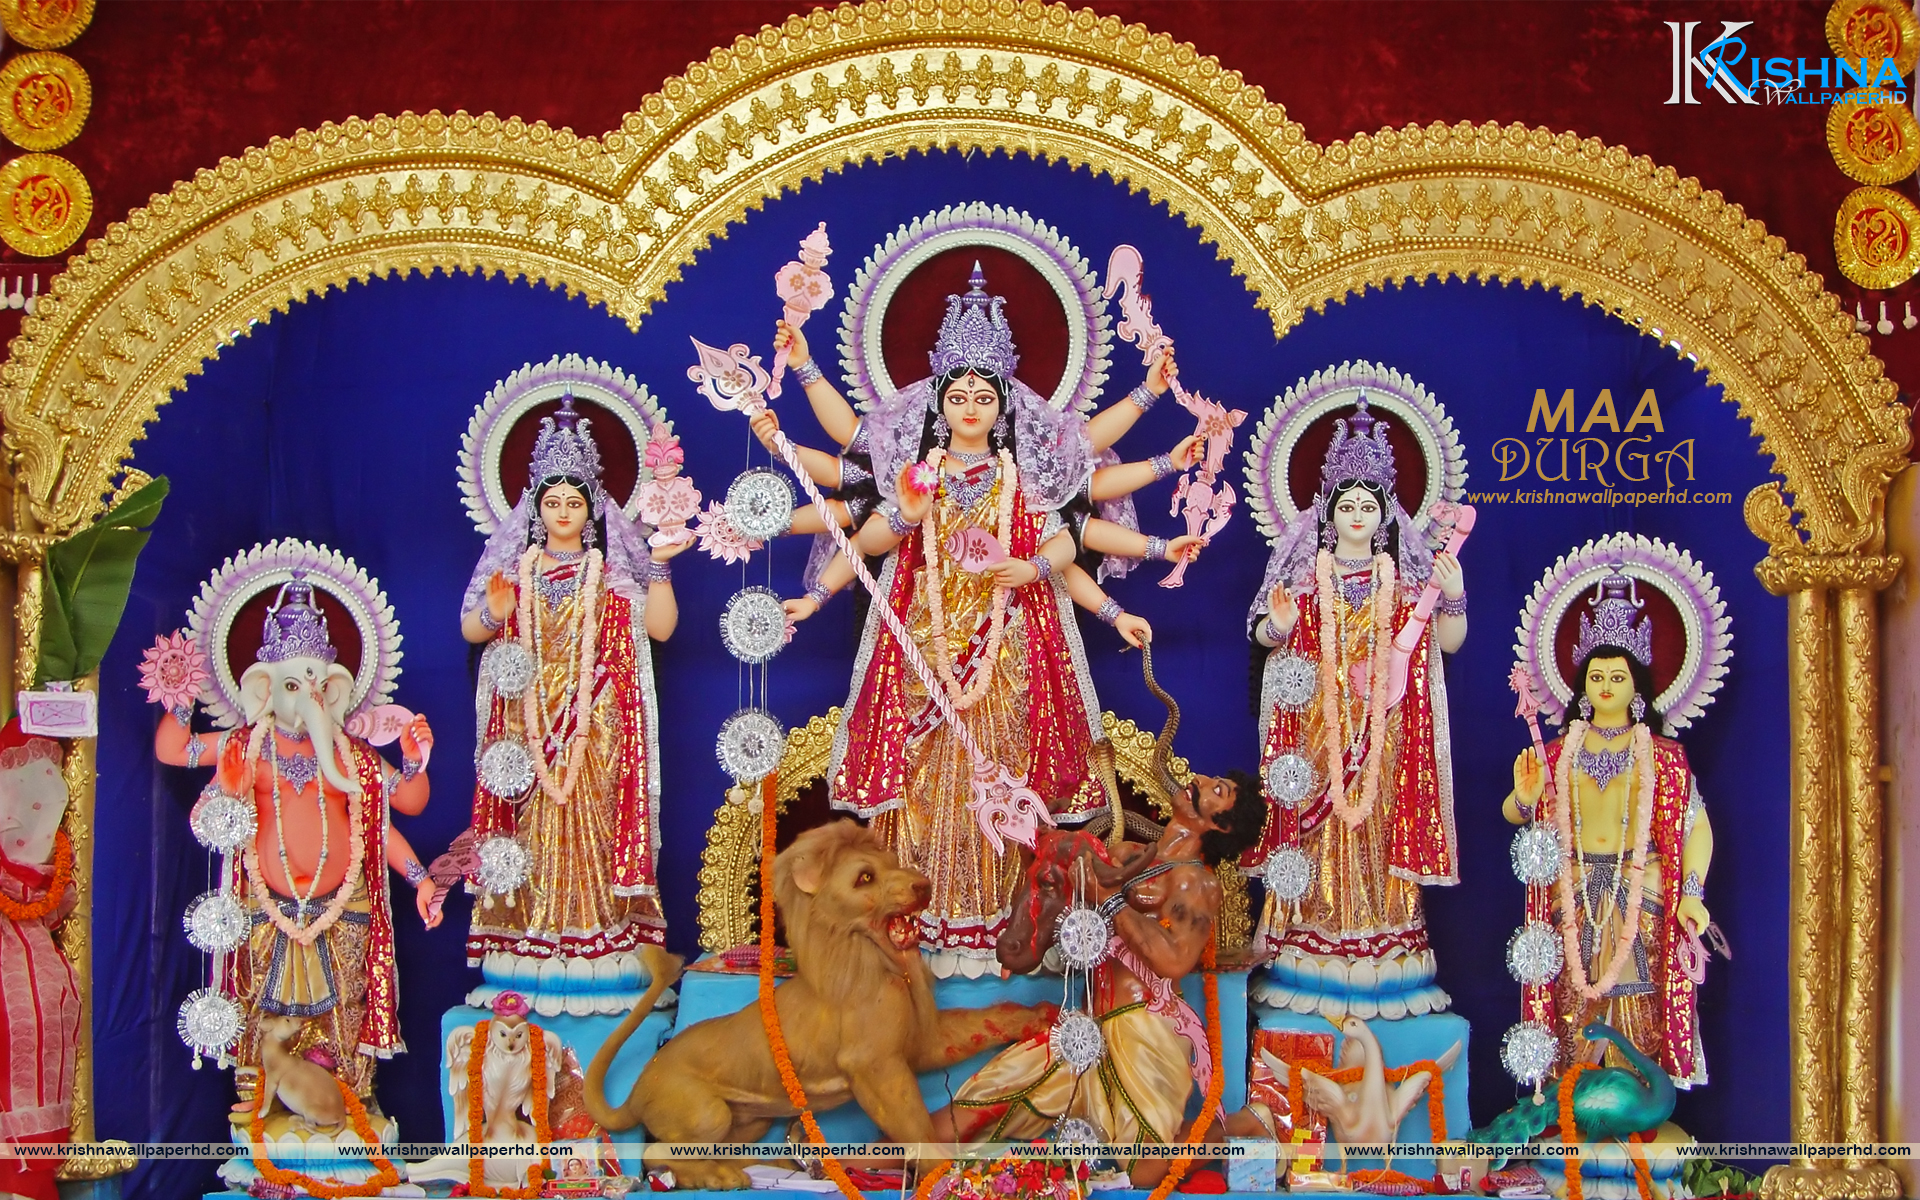 Maa Durga image full HD